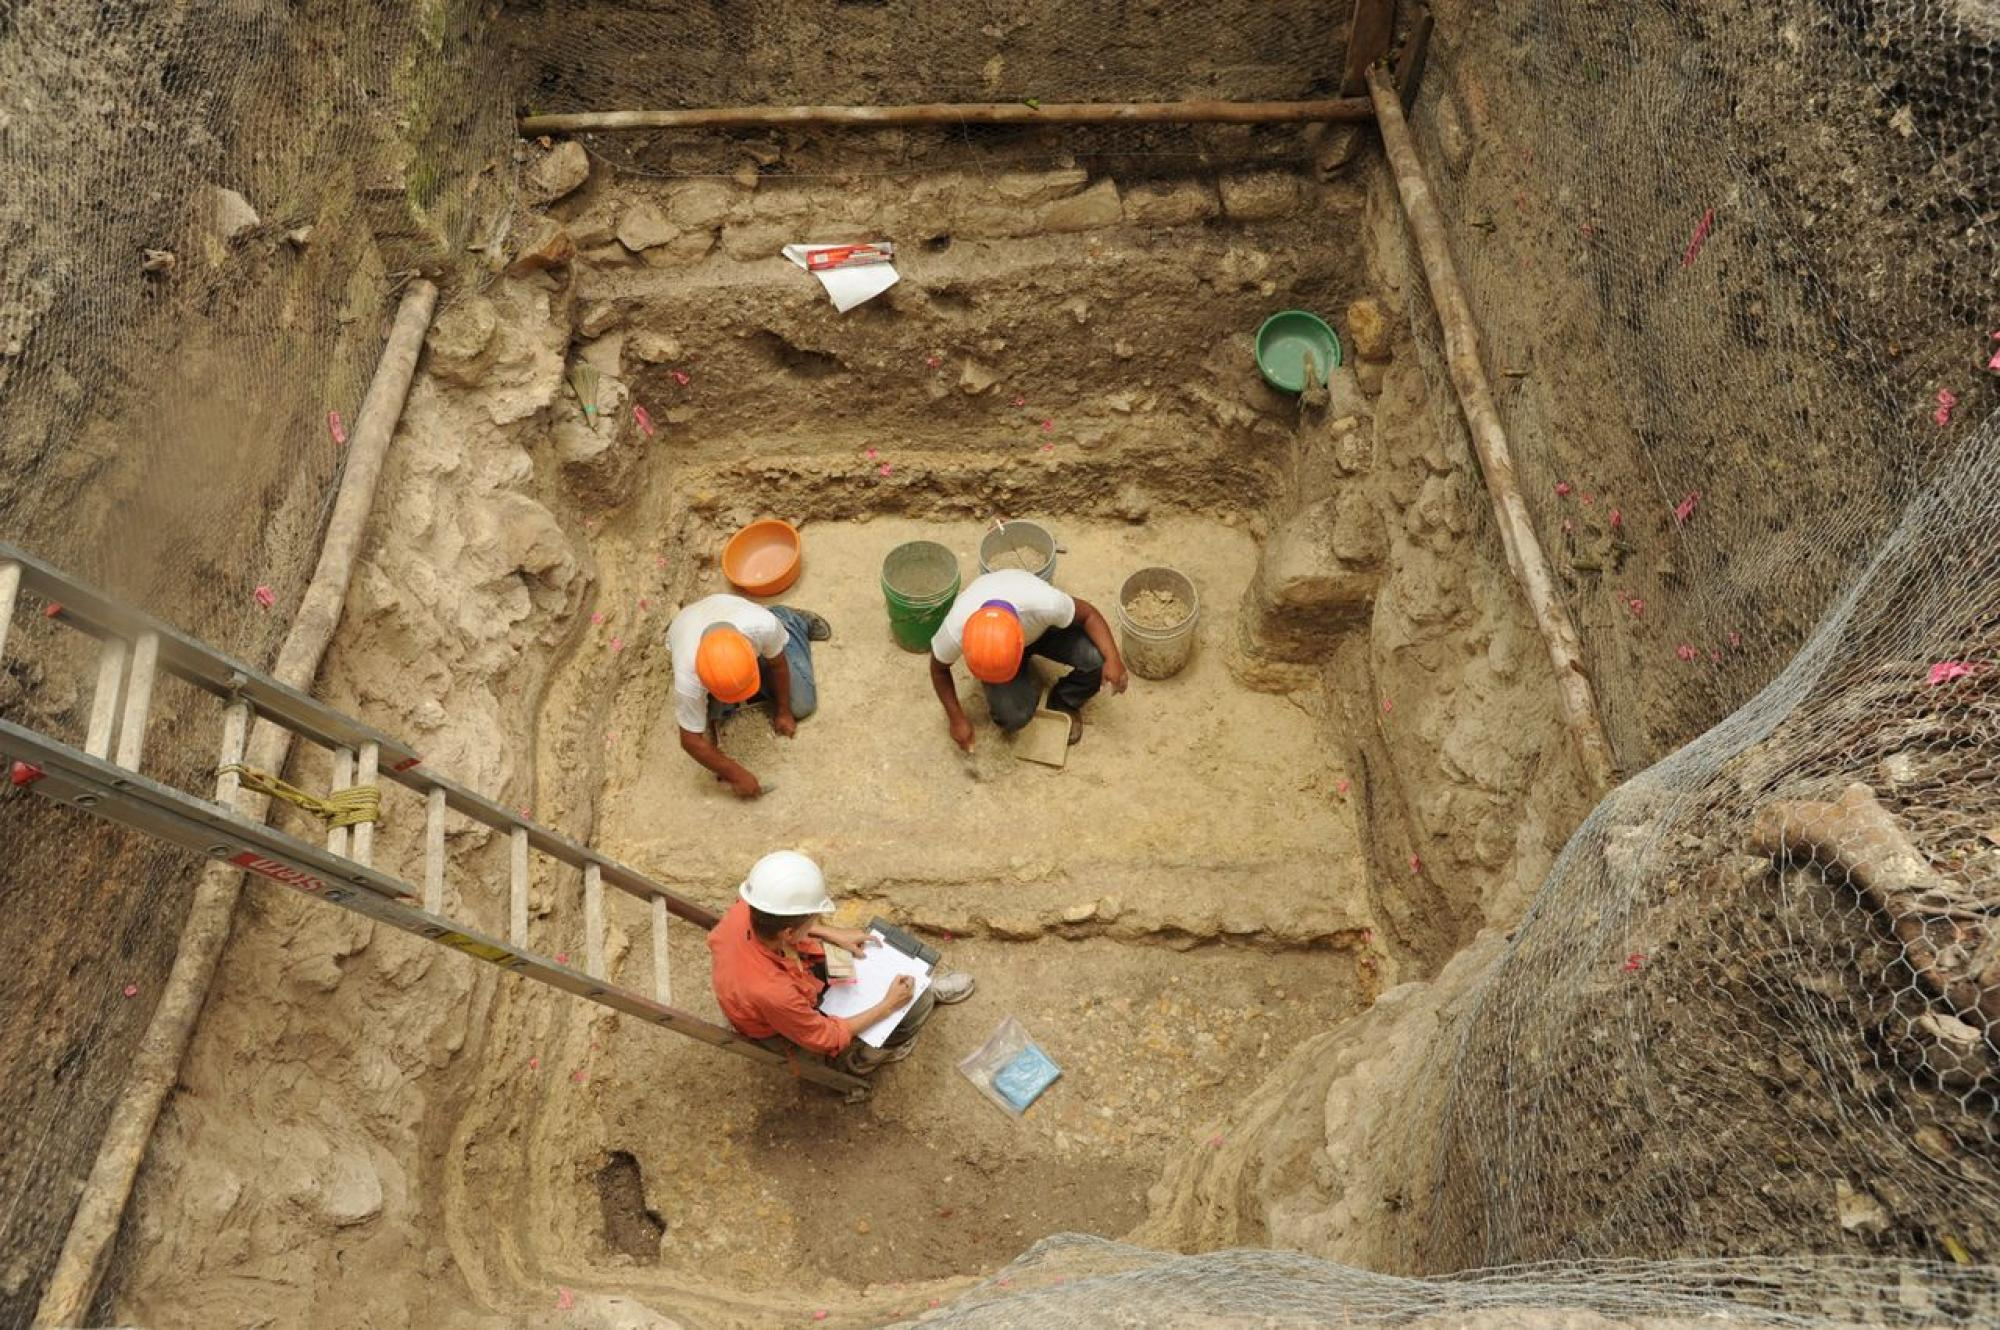 The researchers' findings are based on seven years of excavations.